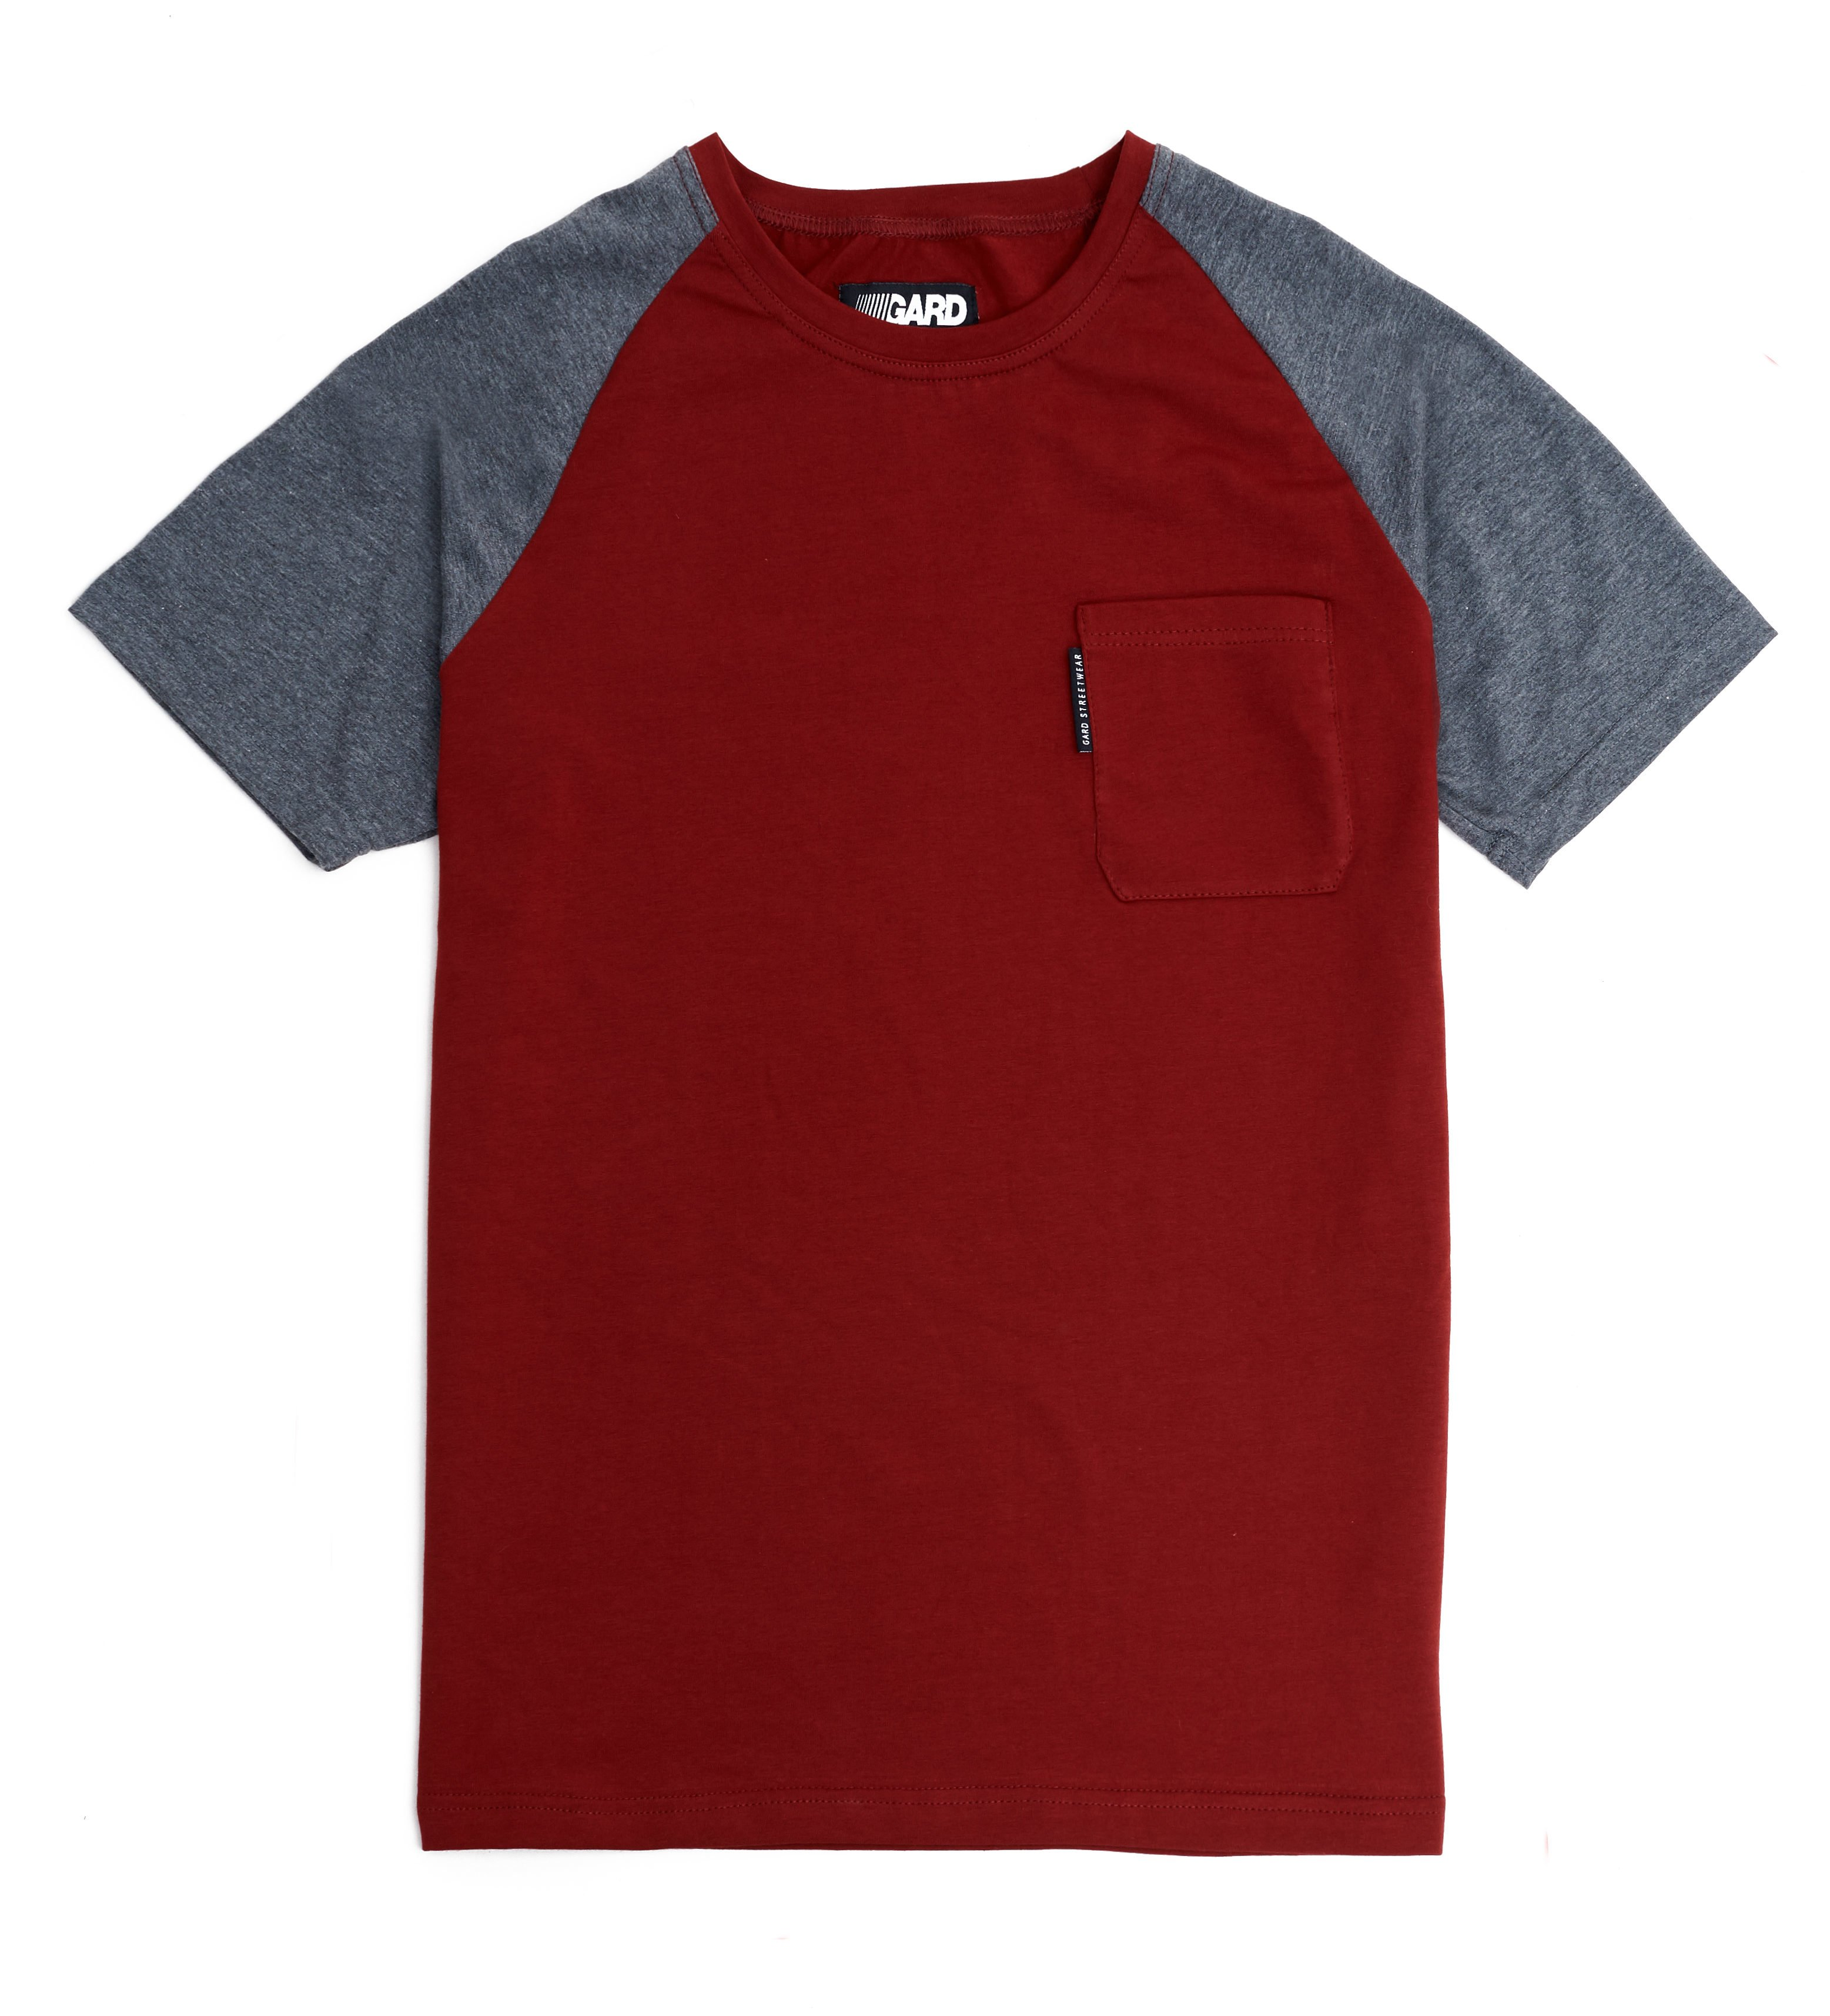 T-SHIRT WITH POCKET 3/17 burgundy-gray